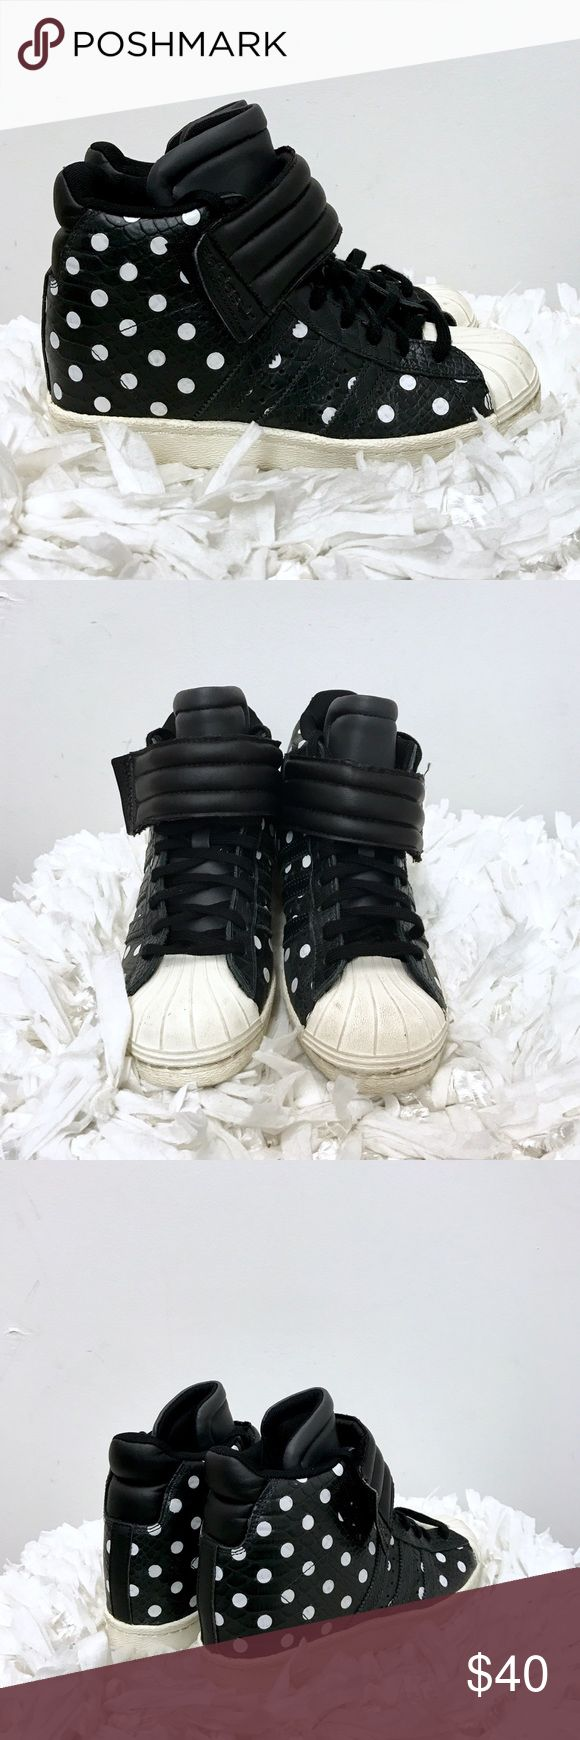 Adidas hidden wedge sneakers Sz 7 Adidas hidden wedge sneakers. Sz 7. Very good condition. Some normal wear. Adidas Shoes Sneakers